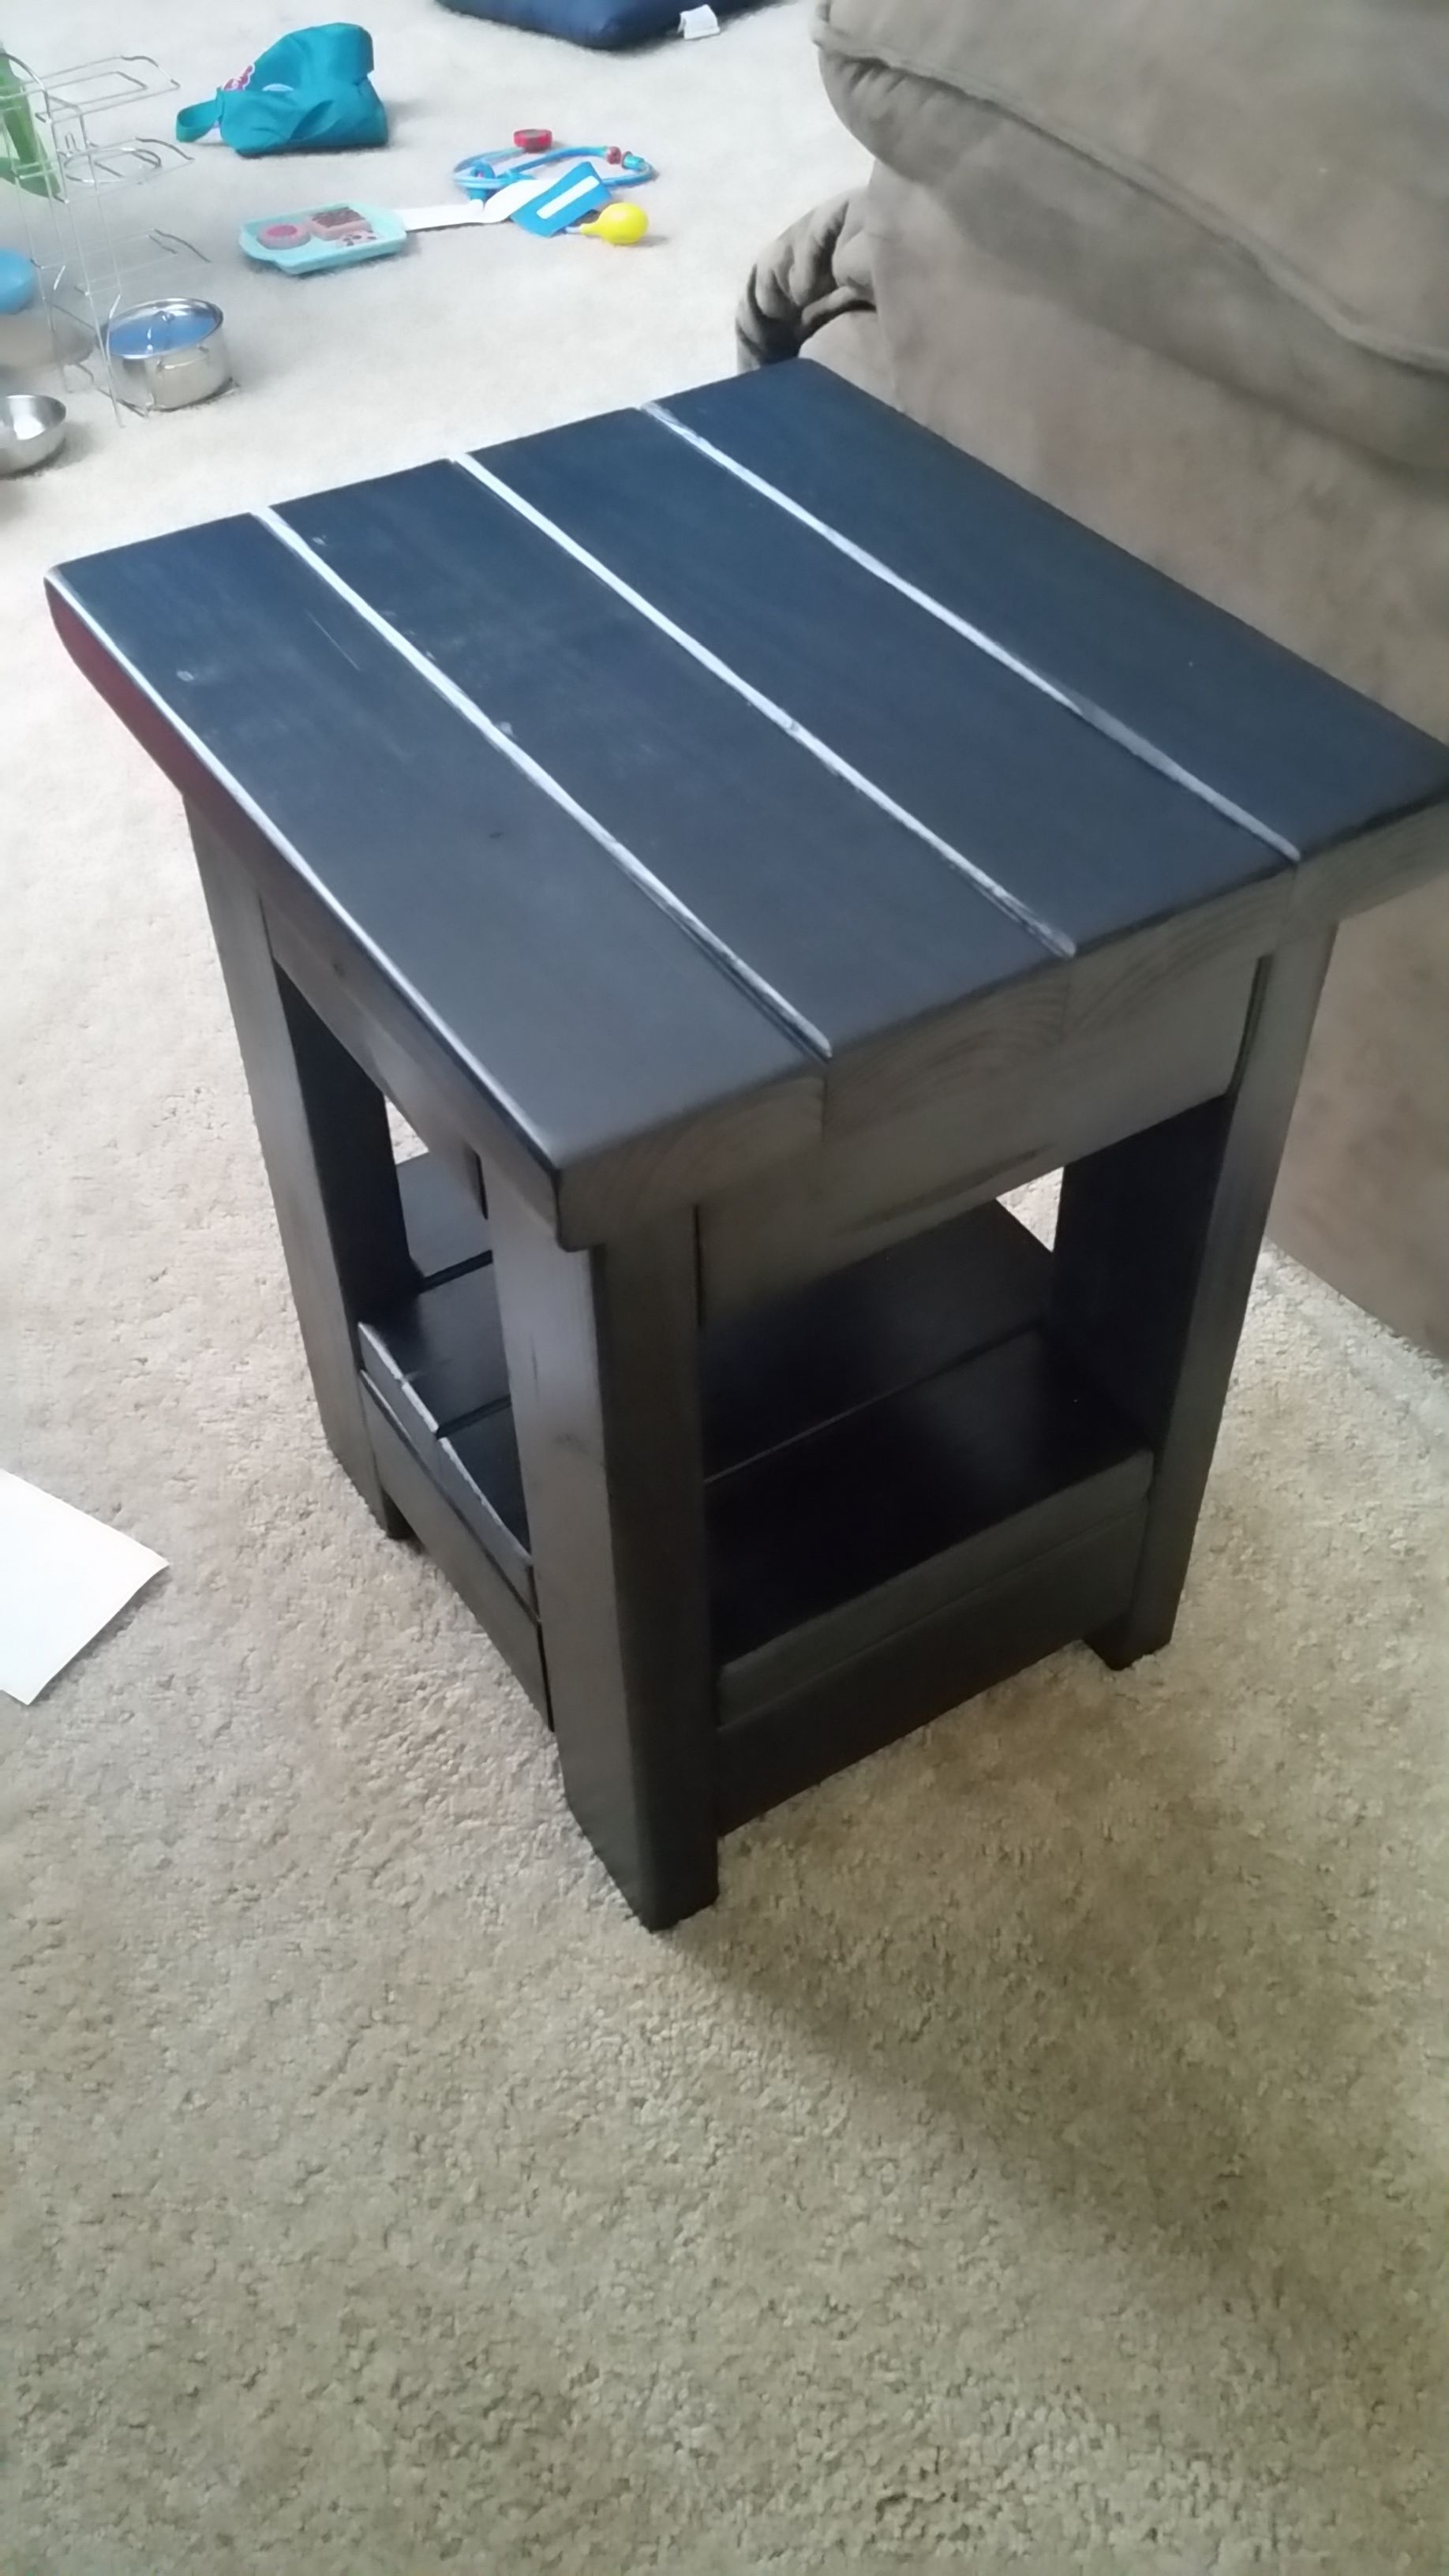 Diy End Tables Plans Small End Table From 2x4 39s Do It Yourself Home Projects